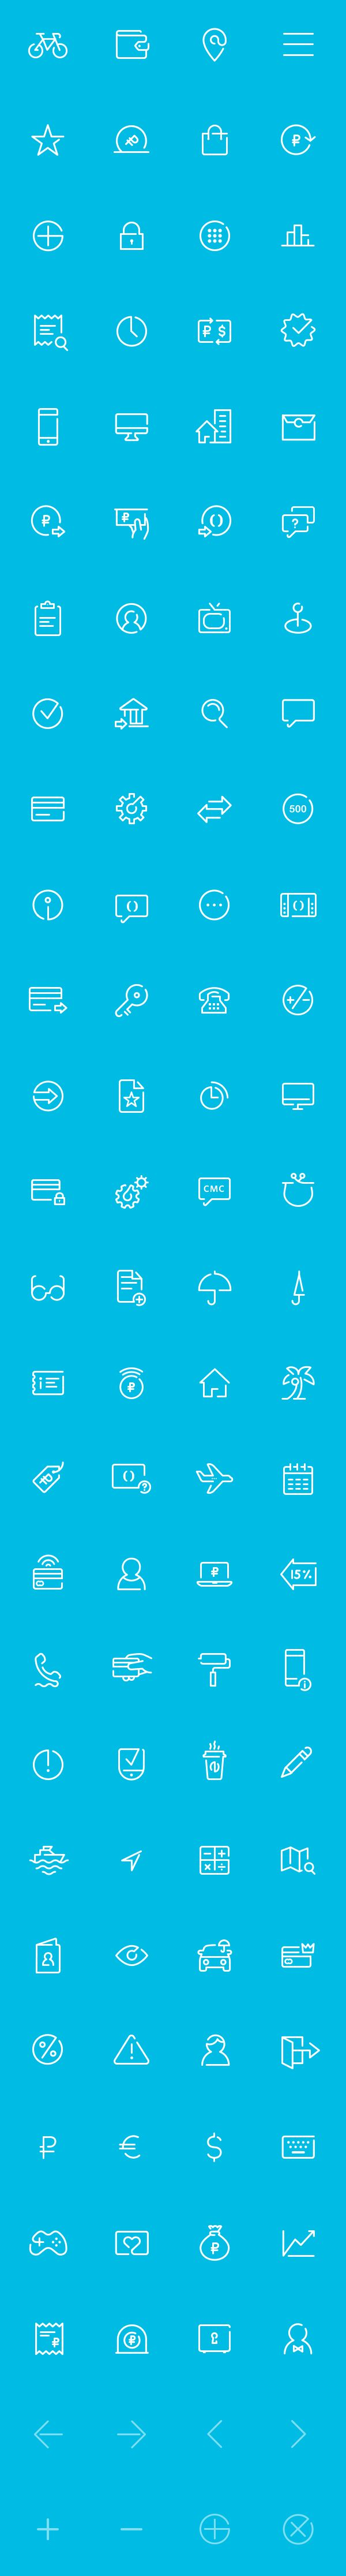 https://www.behance.net/gallery/19372147/Otkritie-Bank-Iconography